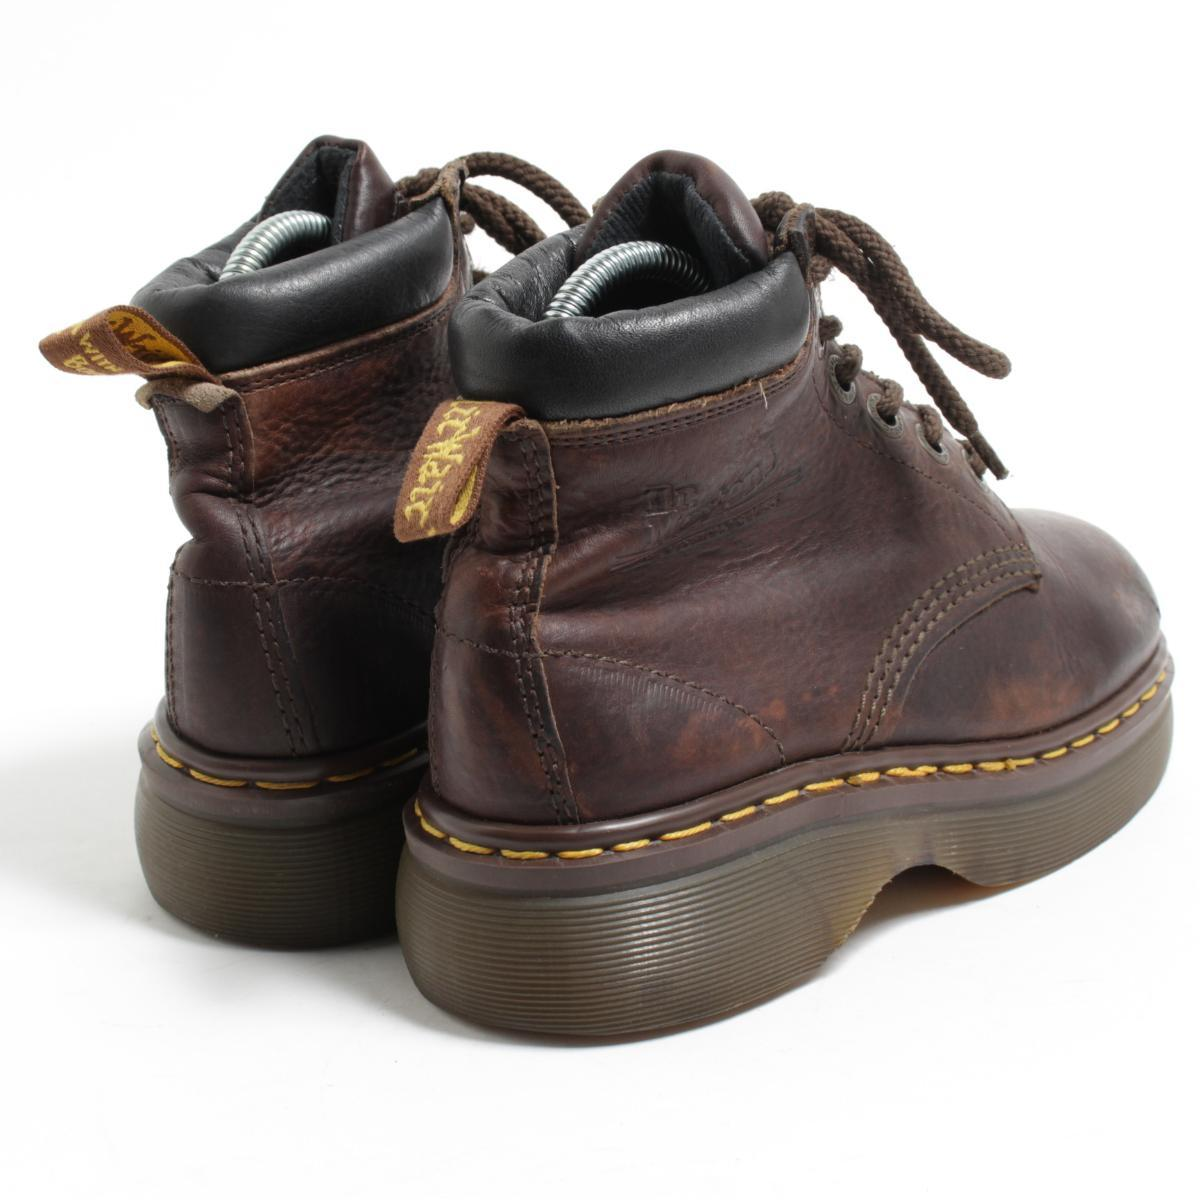 Lady's 22.5cm /bom9349 made in the doctor Martin Dr.Martens 6 hall boots U.K.